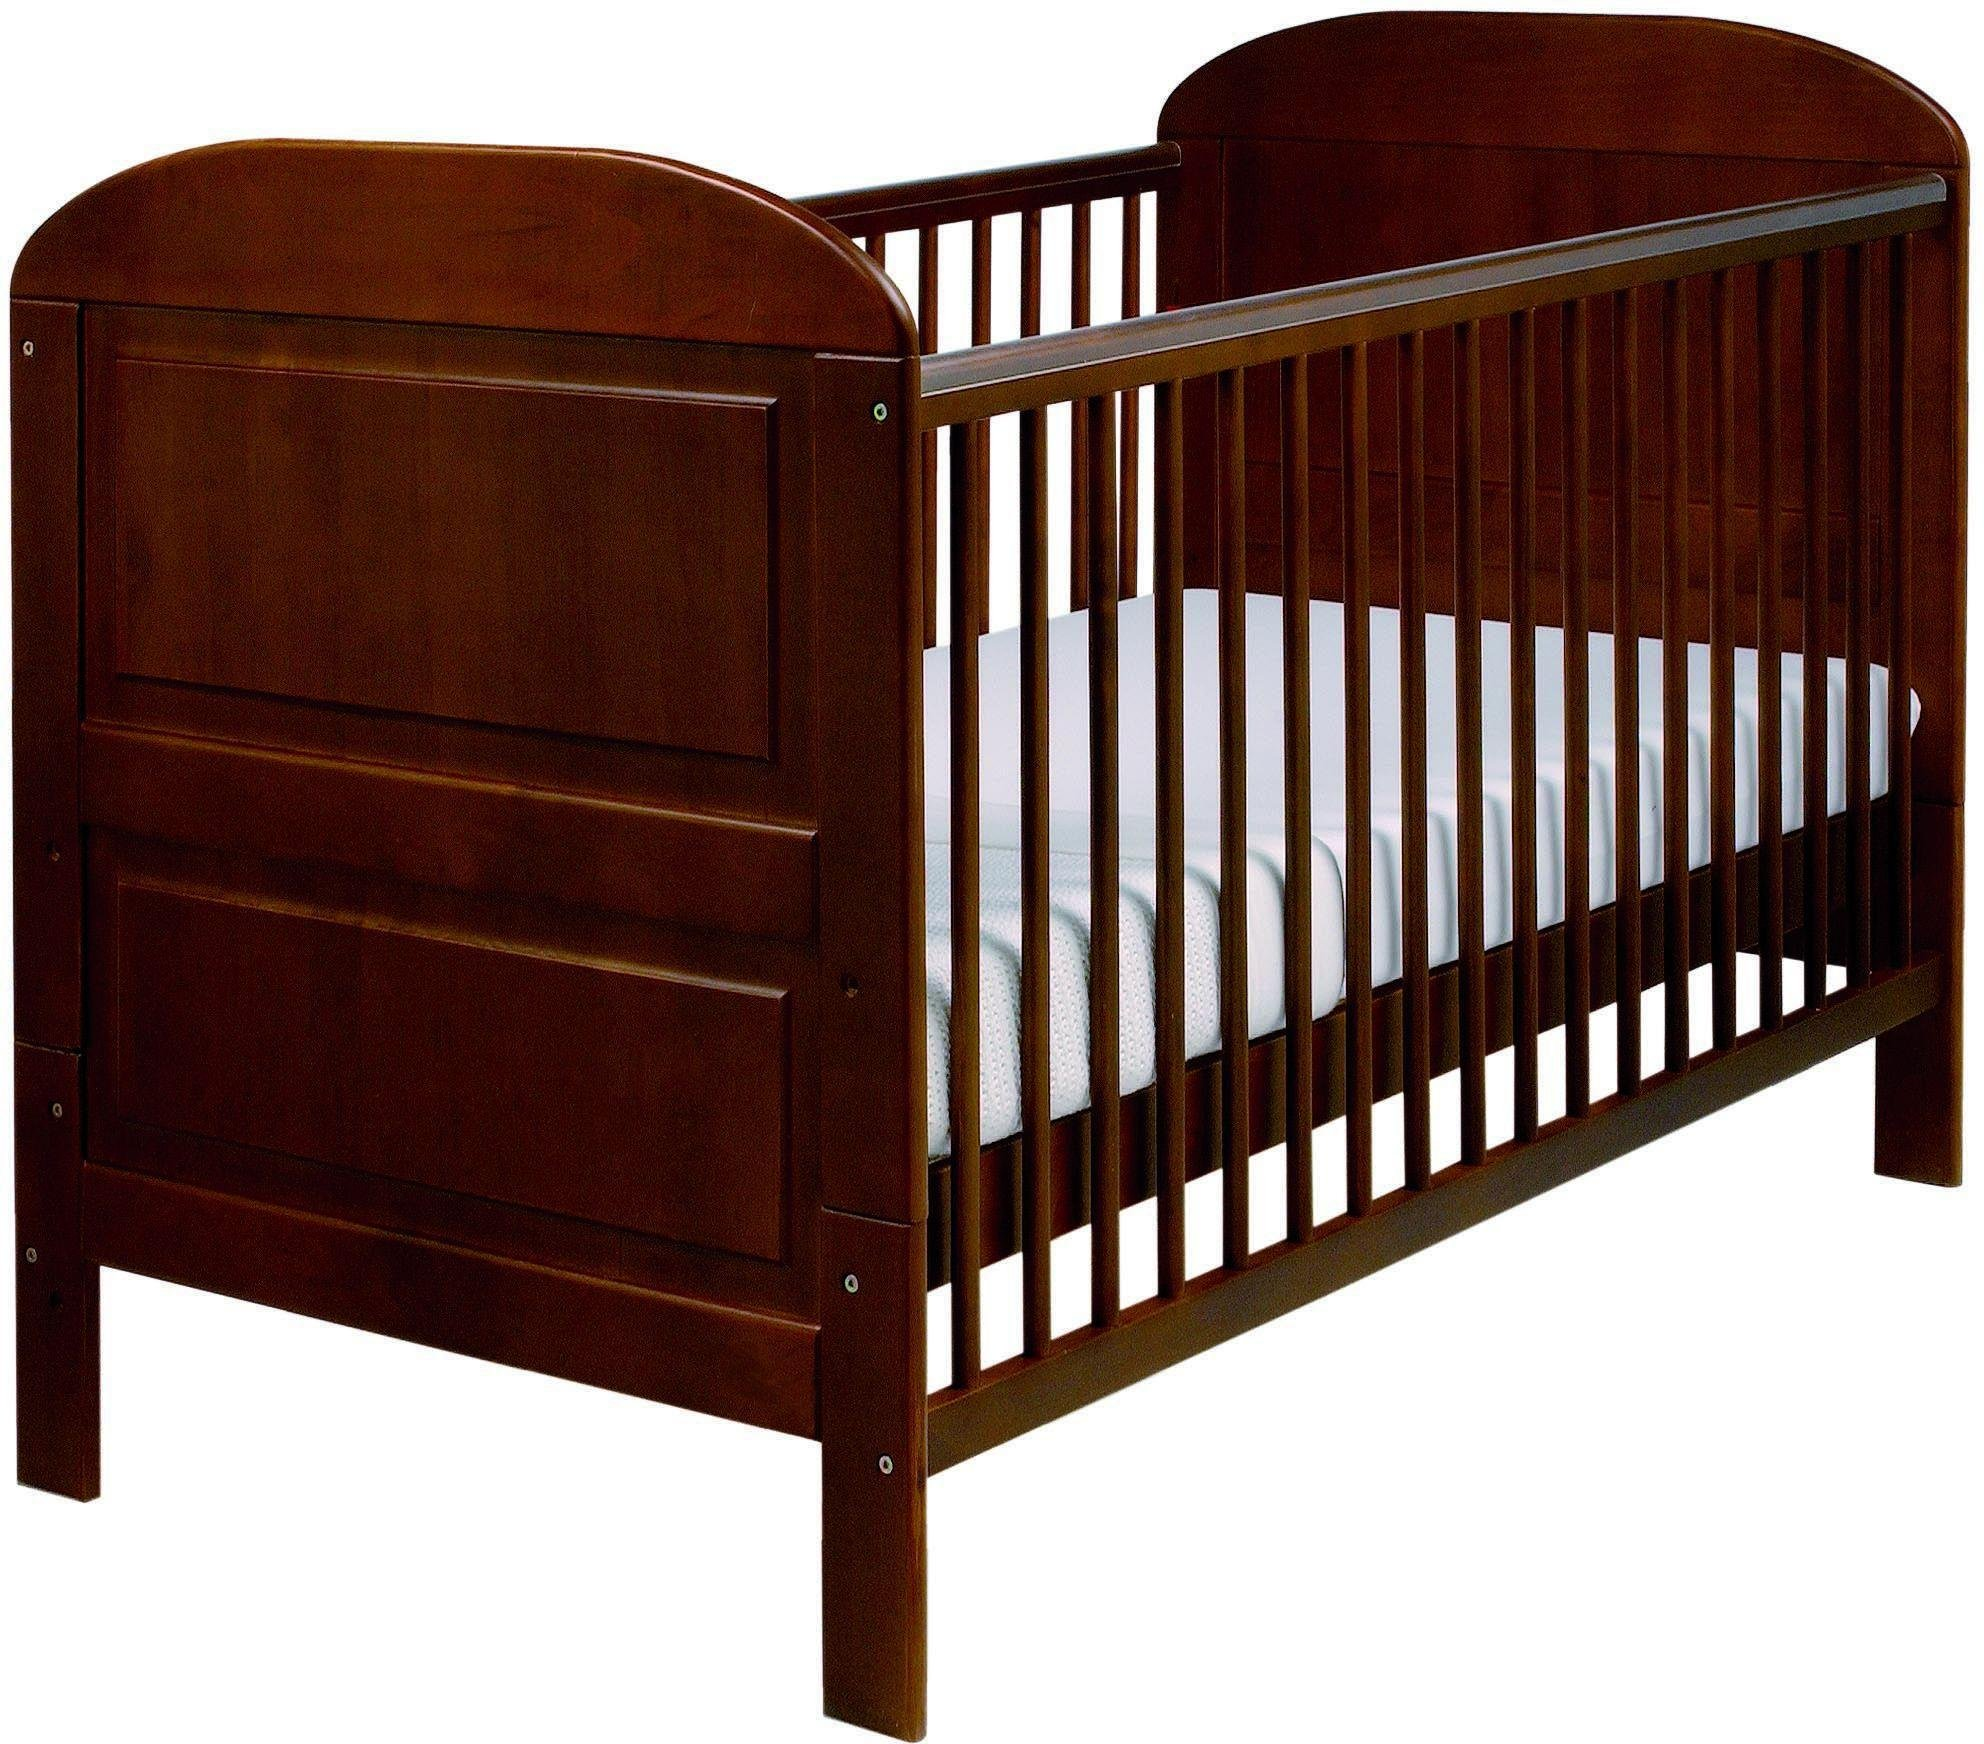 Image of East Coast - Nursery Angelina - Cot Bed - Cocoa